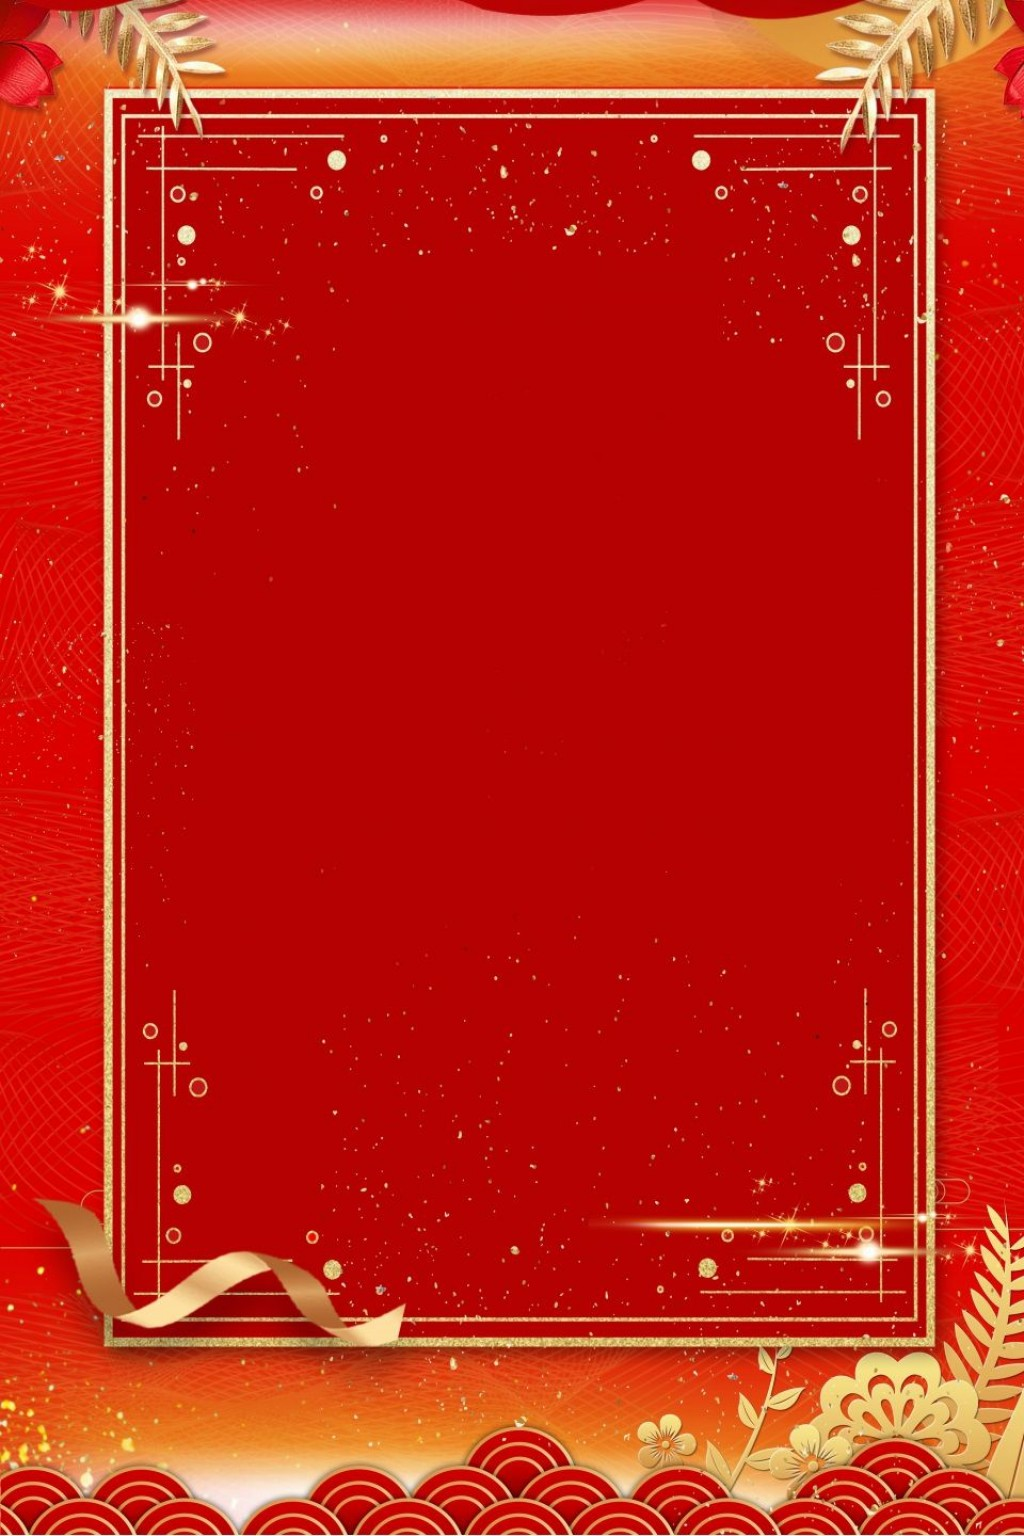 008 Awful Red Carpet Invitation Template Free Highest Quality  DownloadLarge